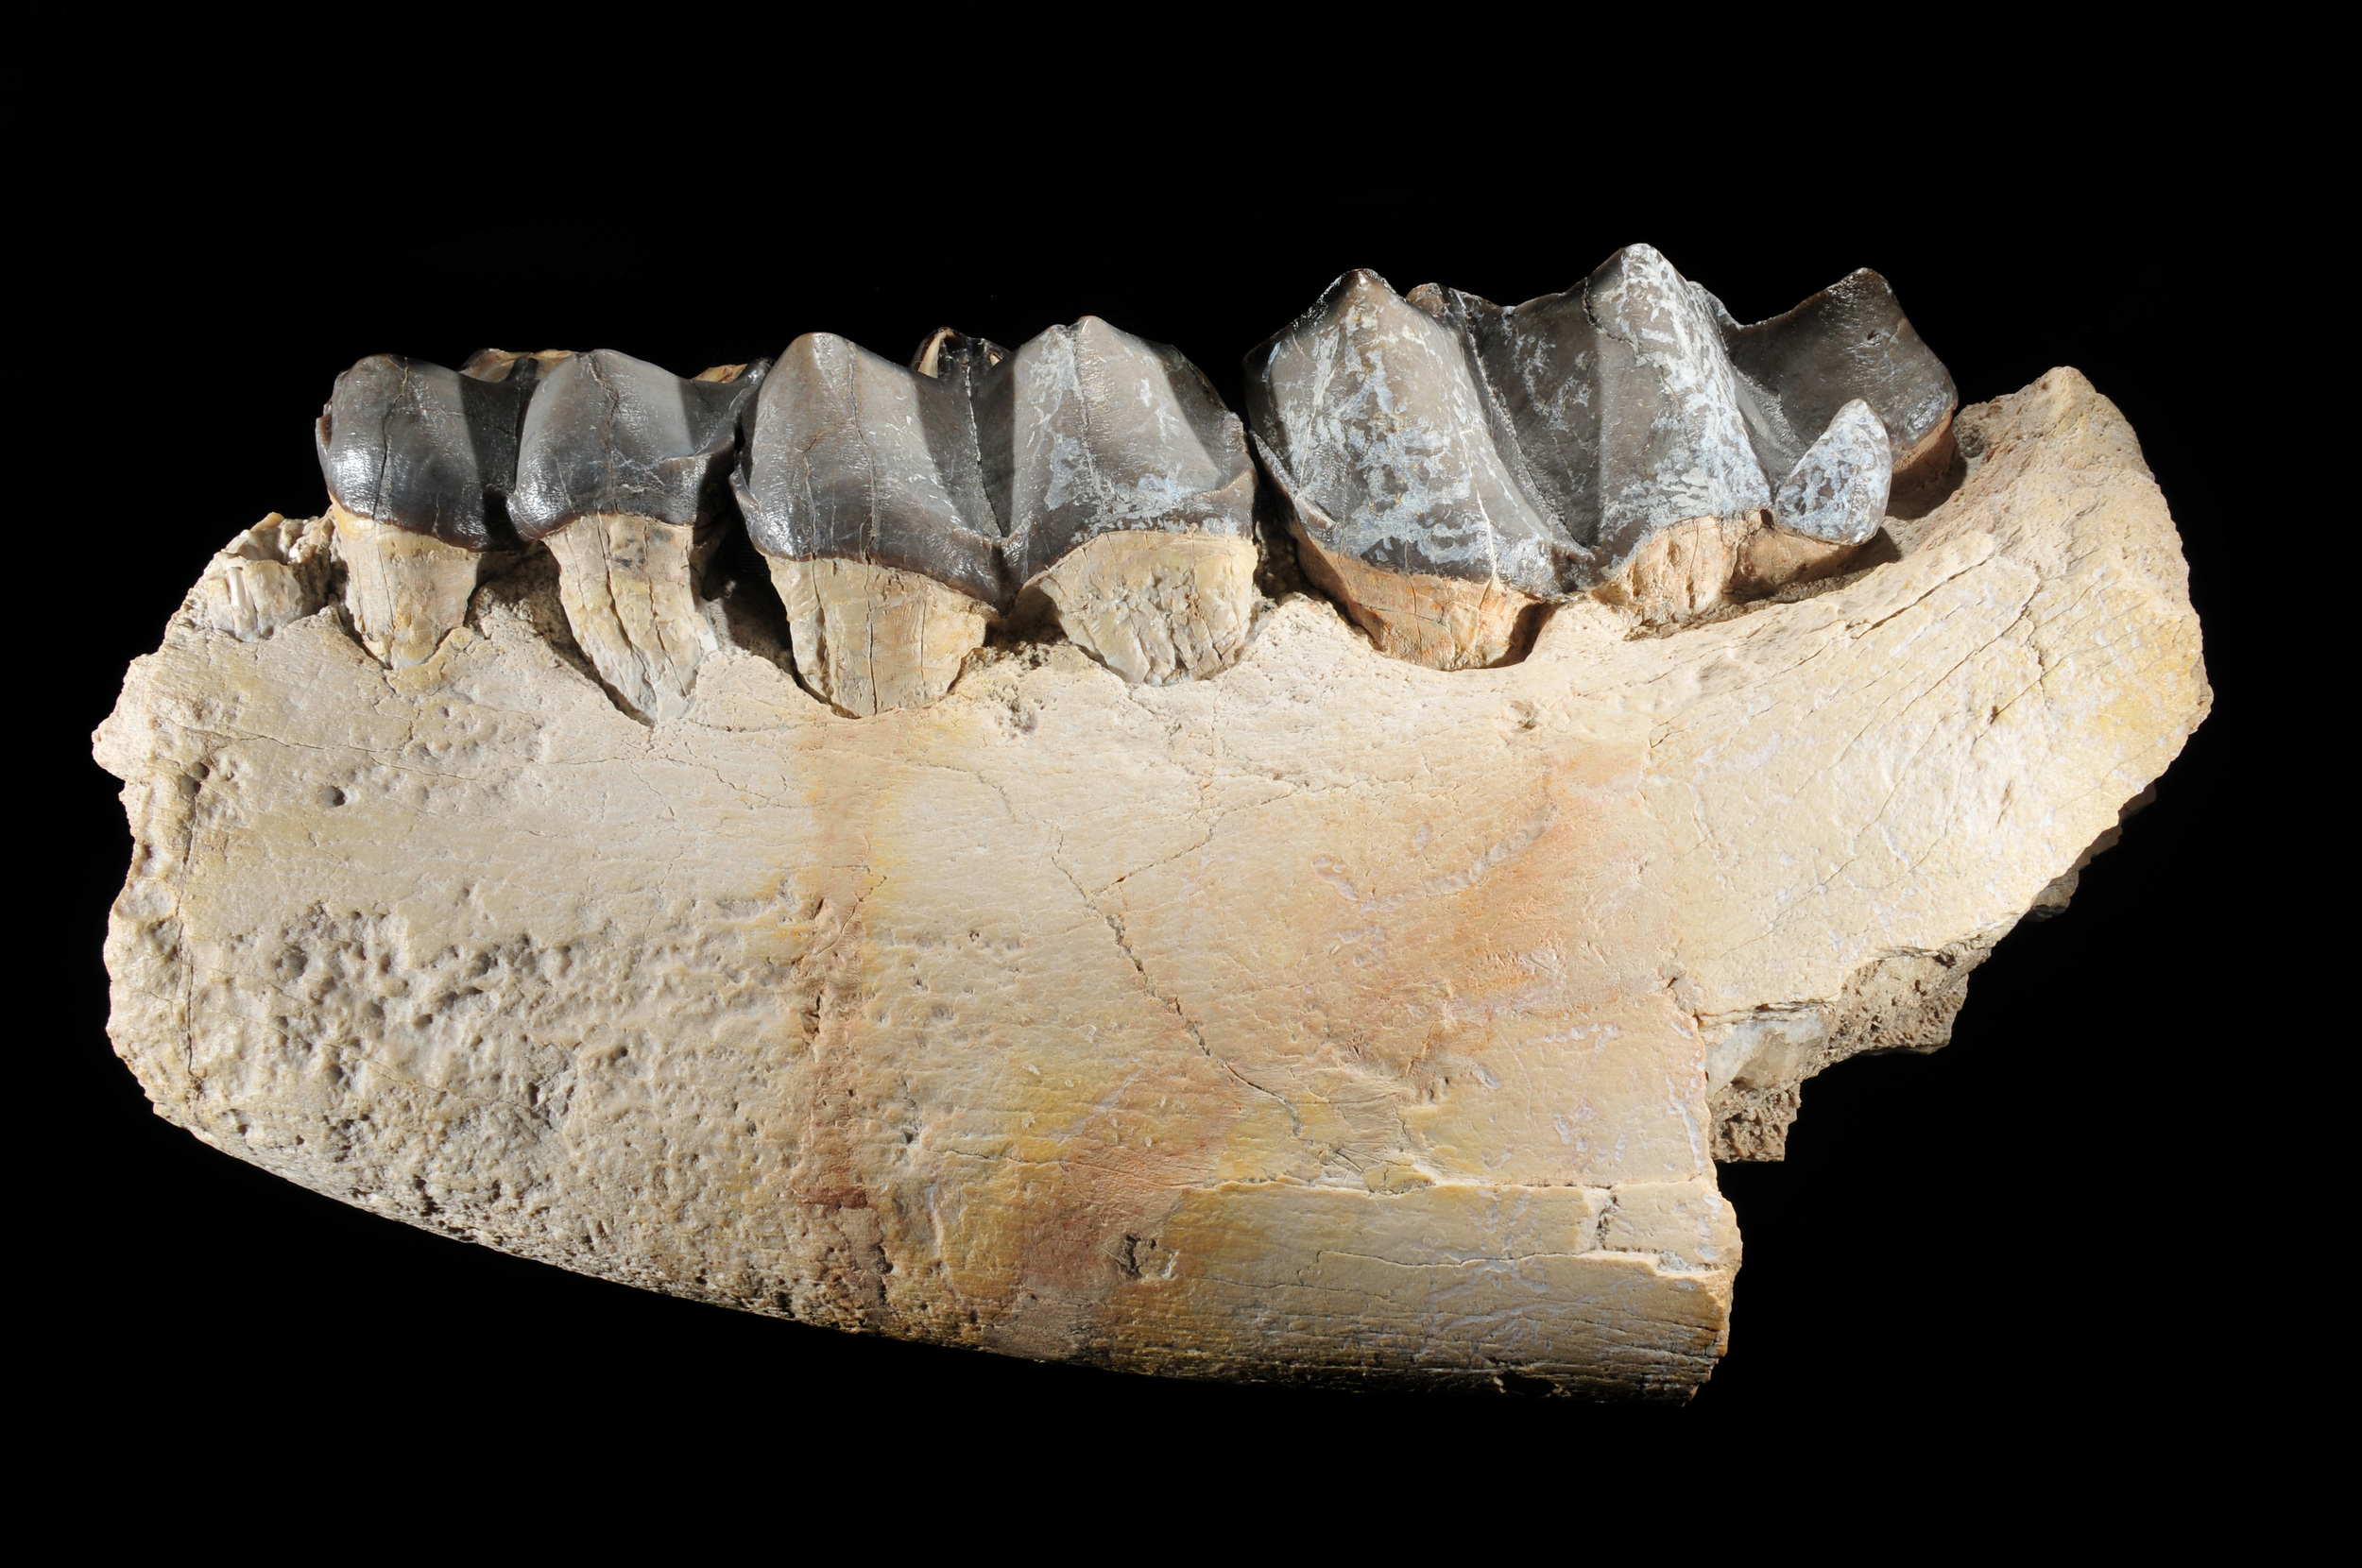 Titanothere jaw section